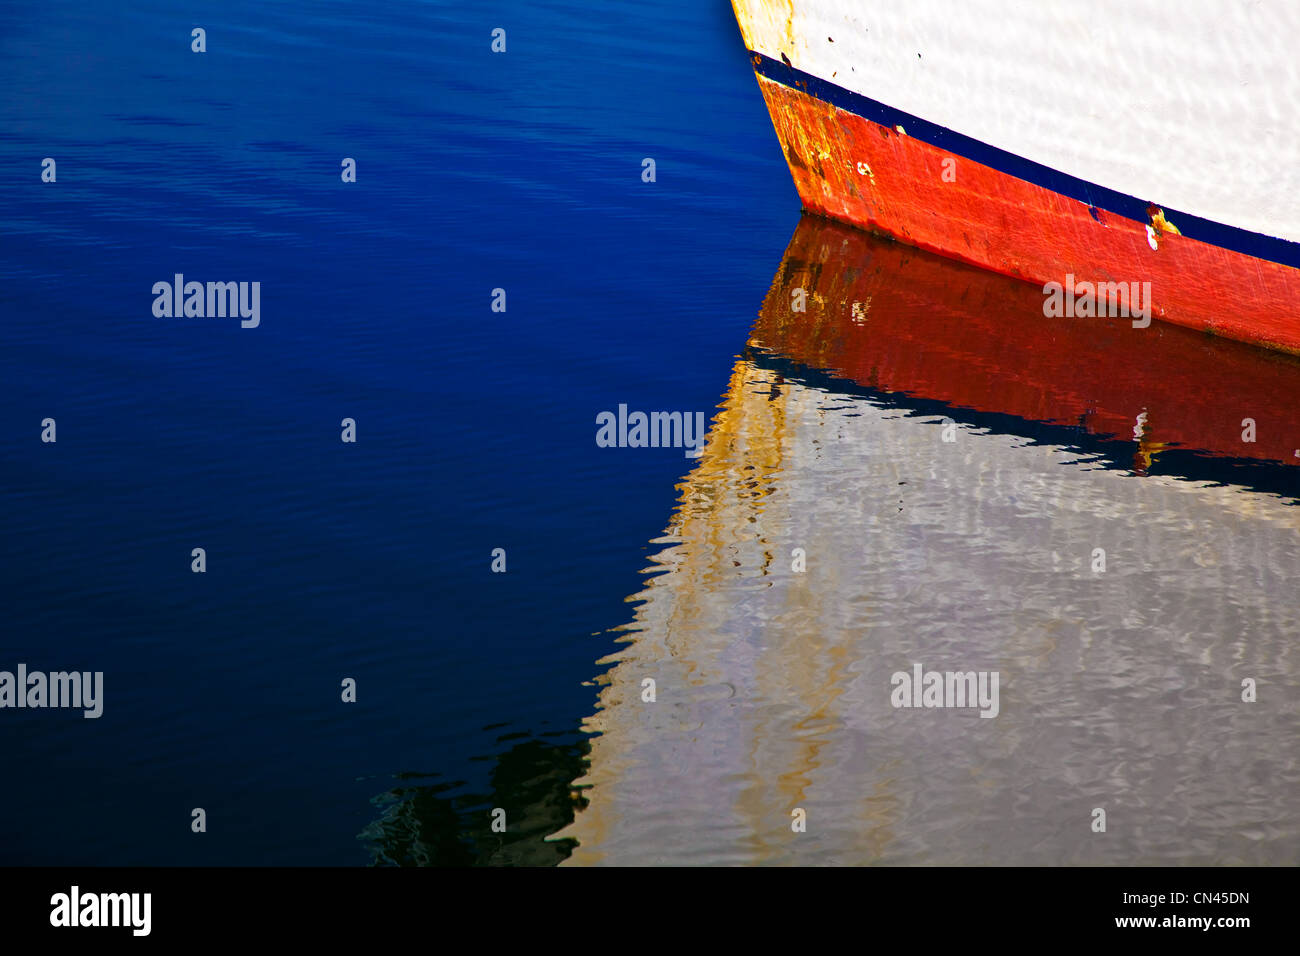 Reflection of boat bow in water - Stock Image